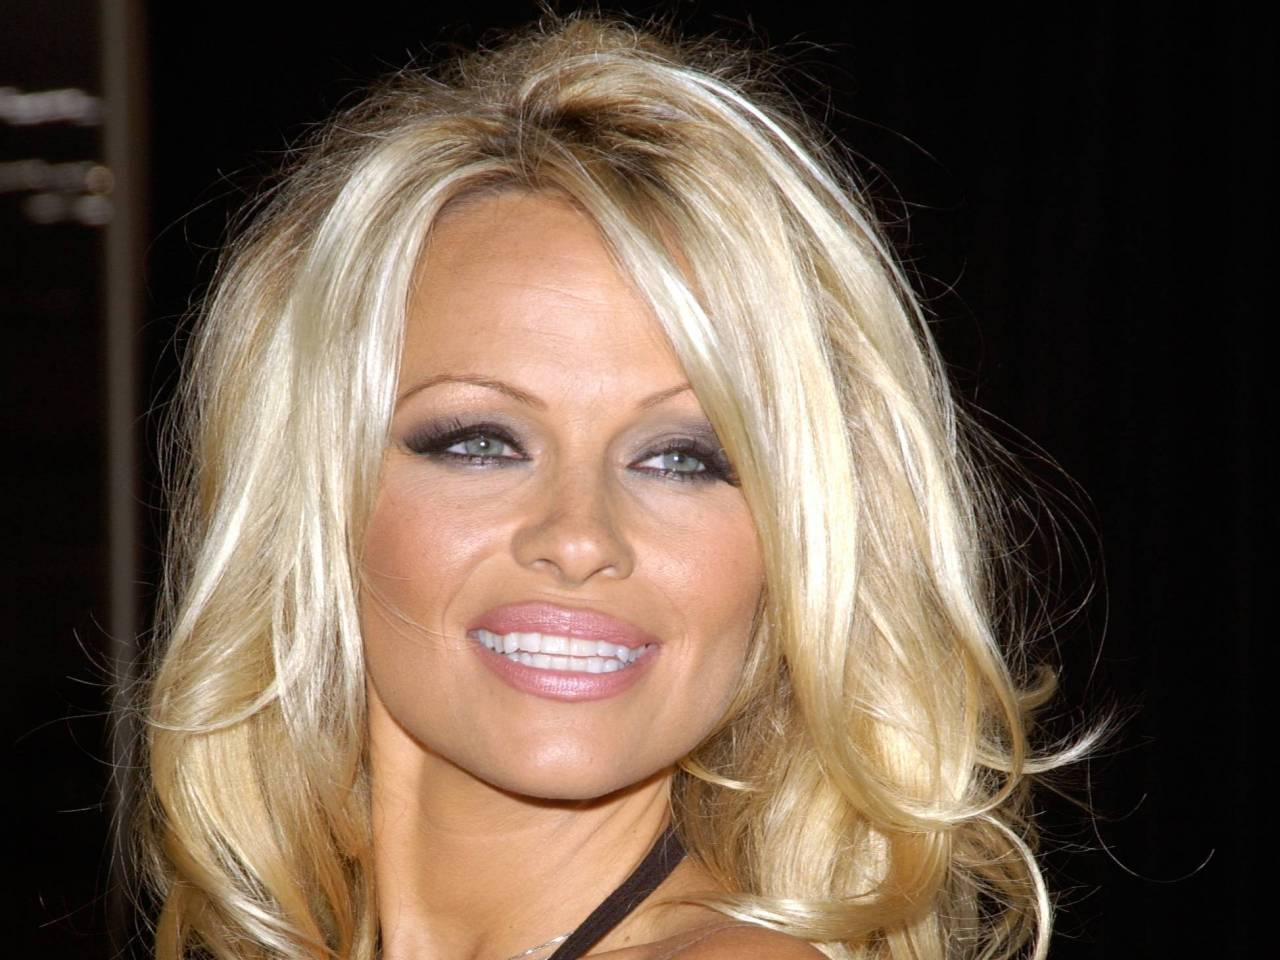 Pamela Anderson: Net worth, Salary, House, Car, Single ...